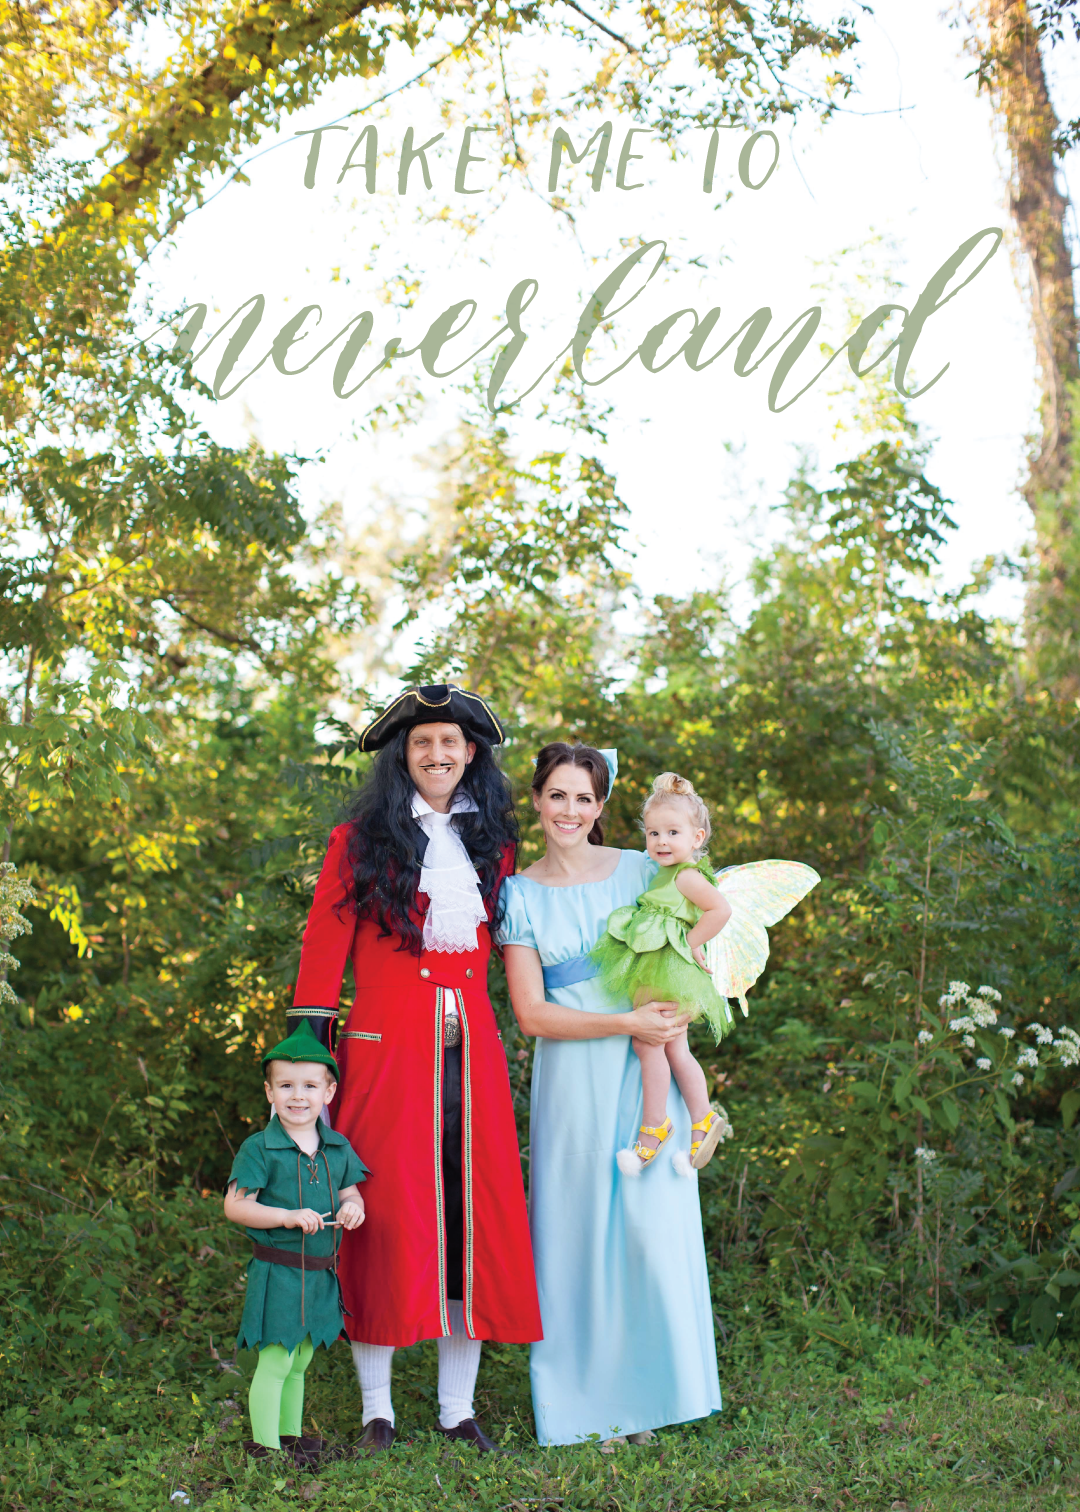 Family costume - Peter Pan | Holiday | Pinterest | Peter pans and ...